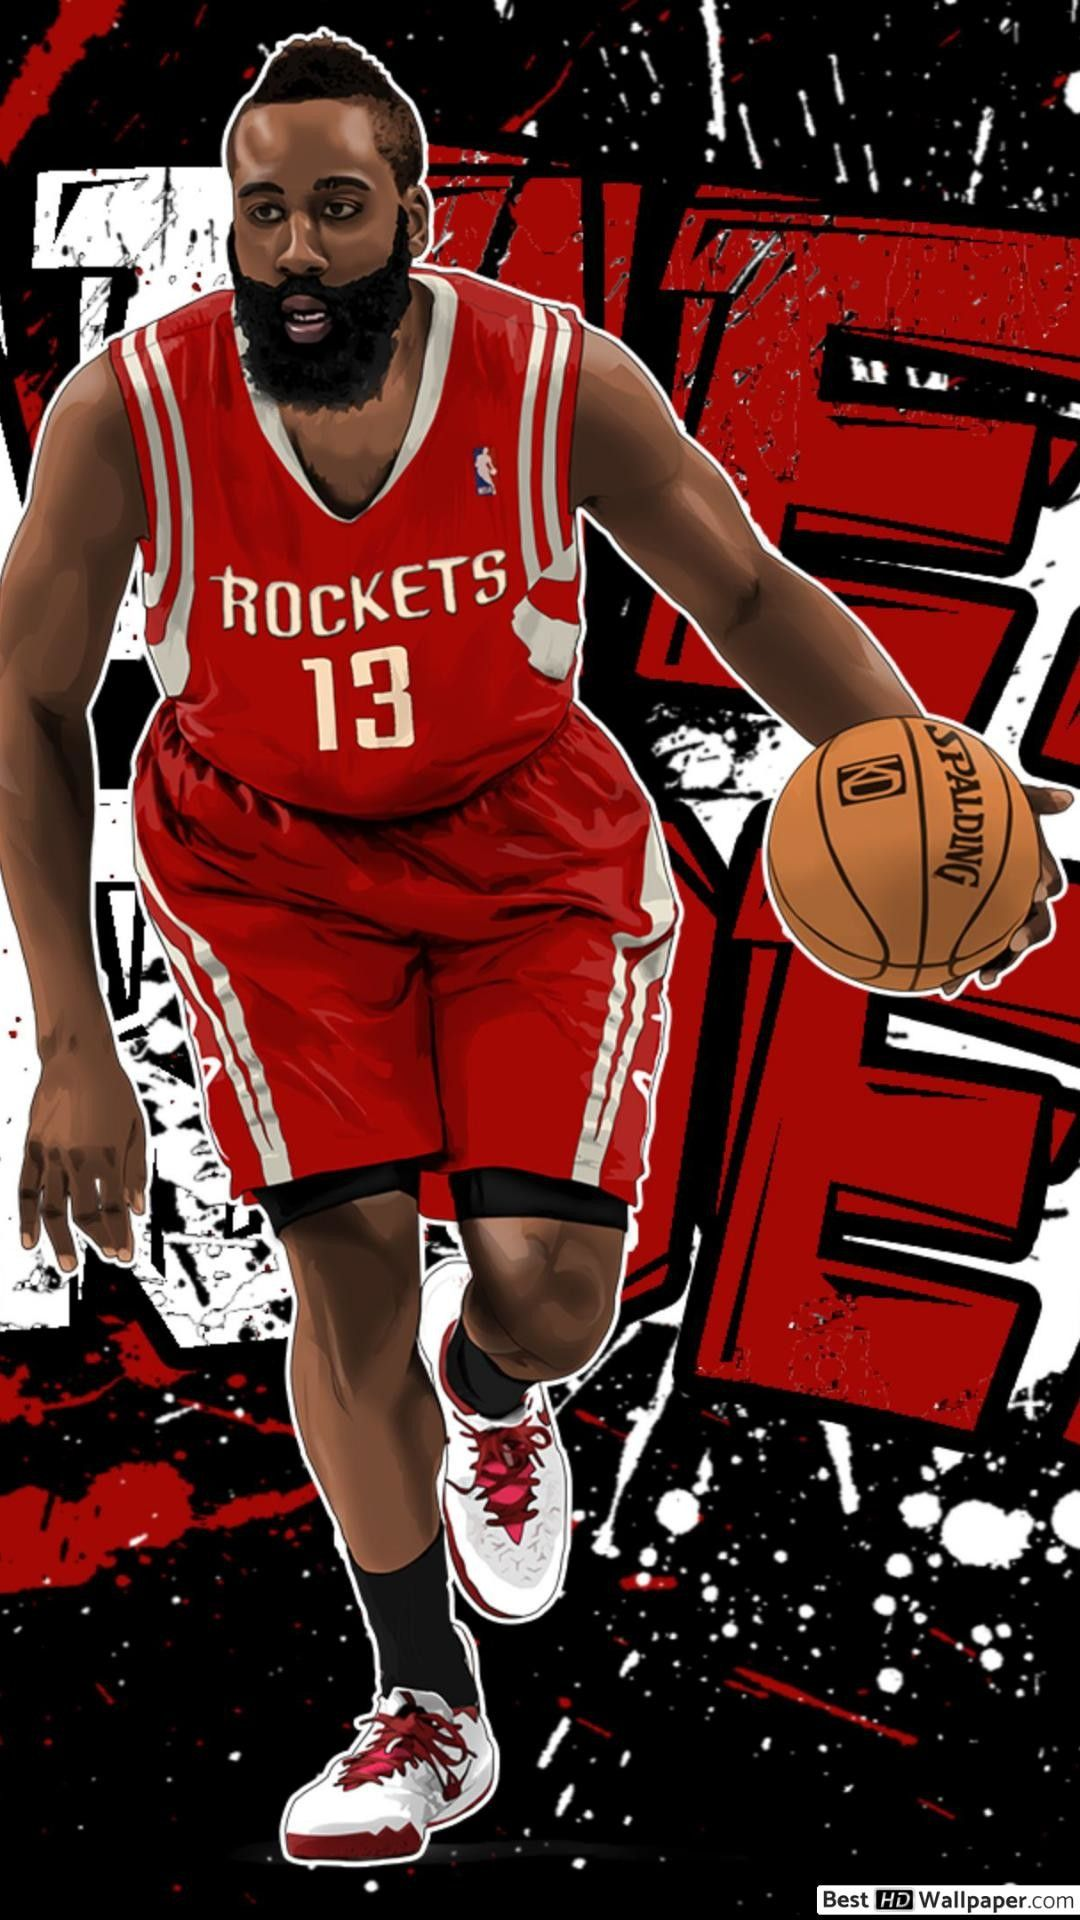 Rocket James Harden Background Image Rocket James